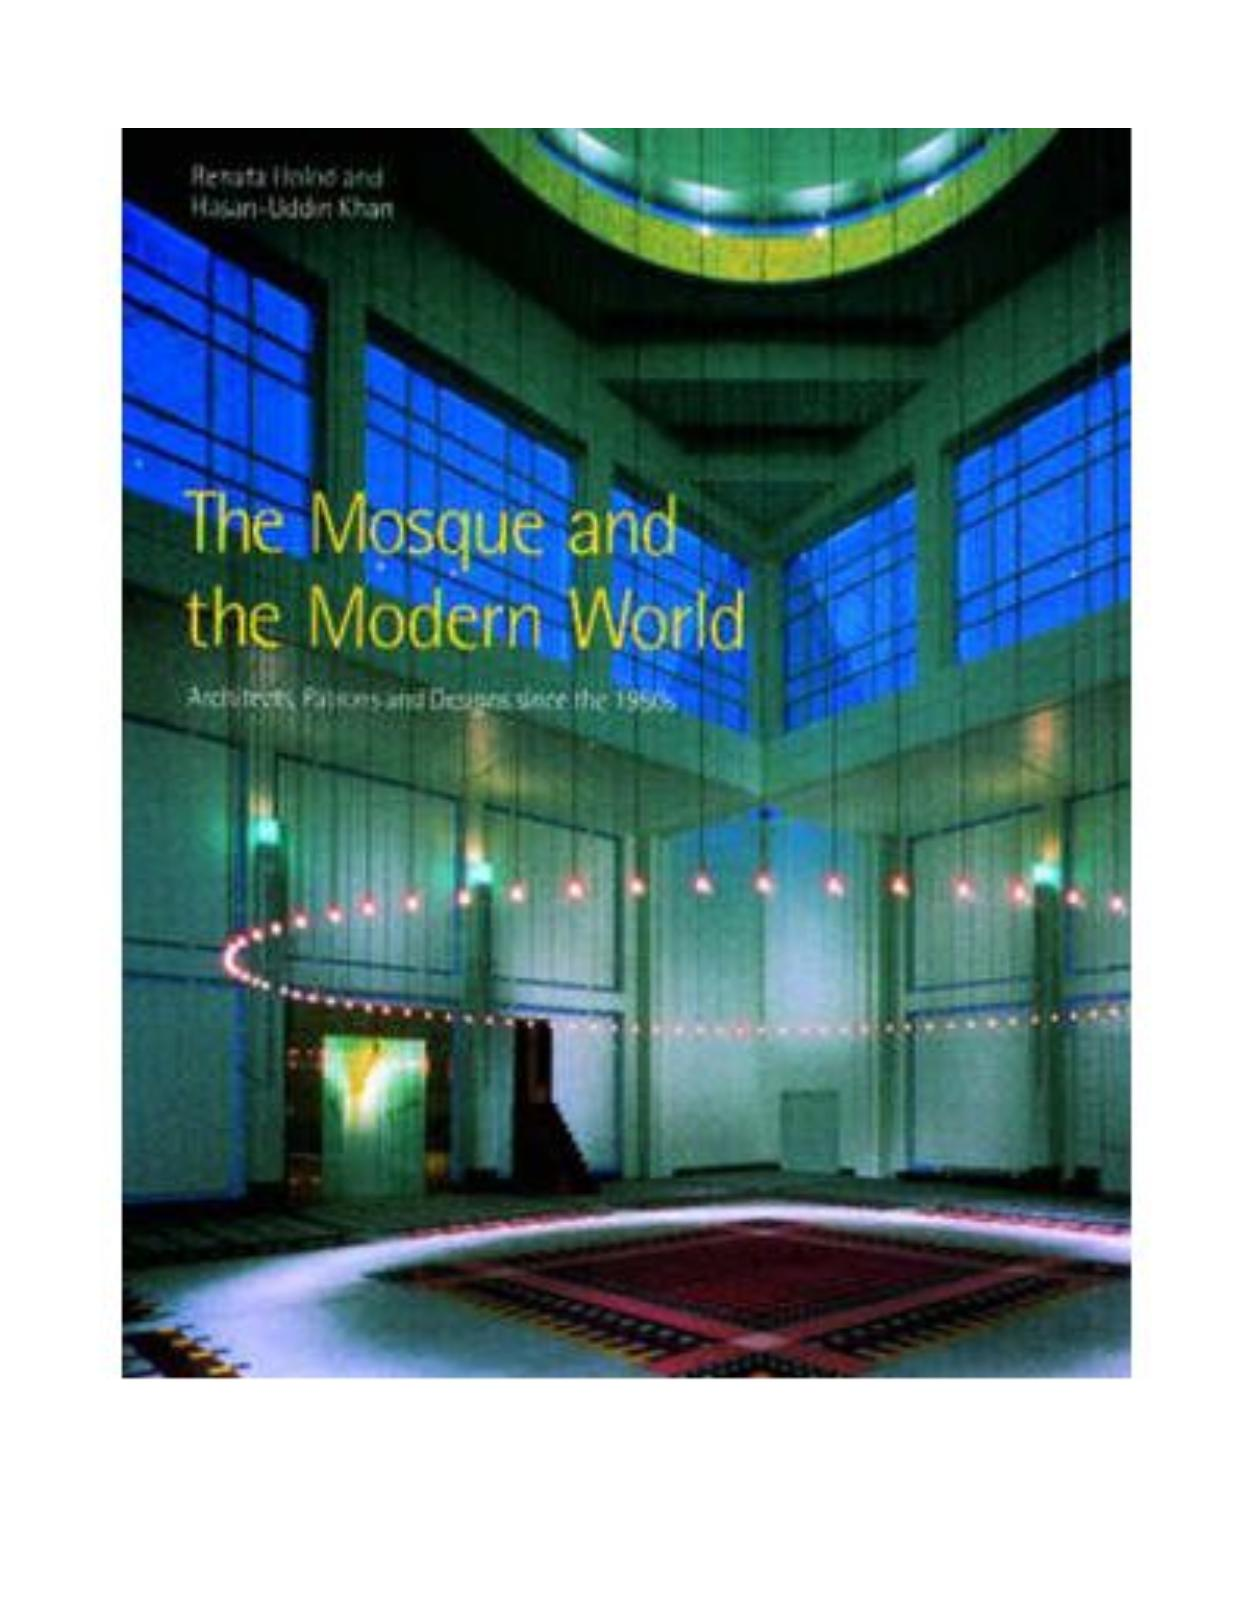 The Mosque and the Modern World: Architects, Patrons and Designs Since the 1950s